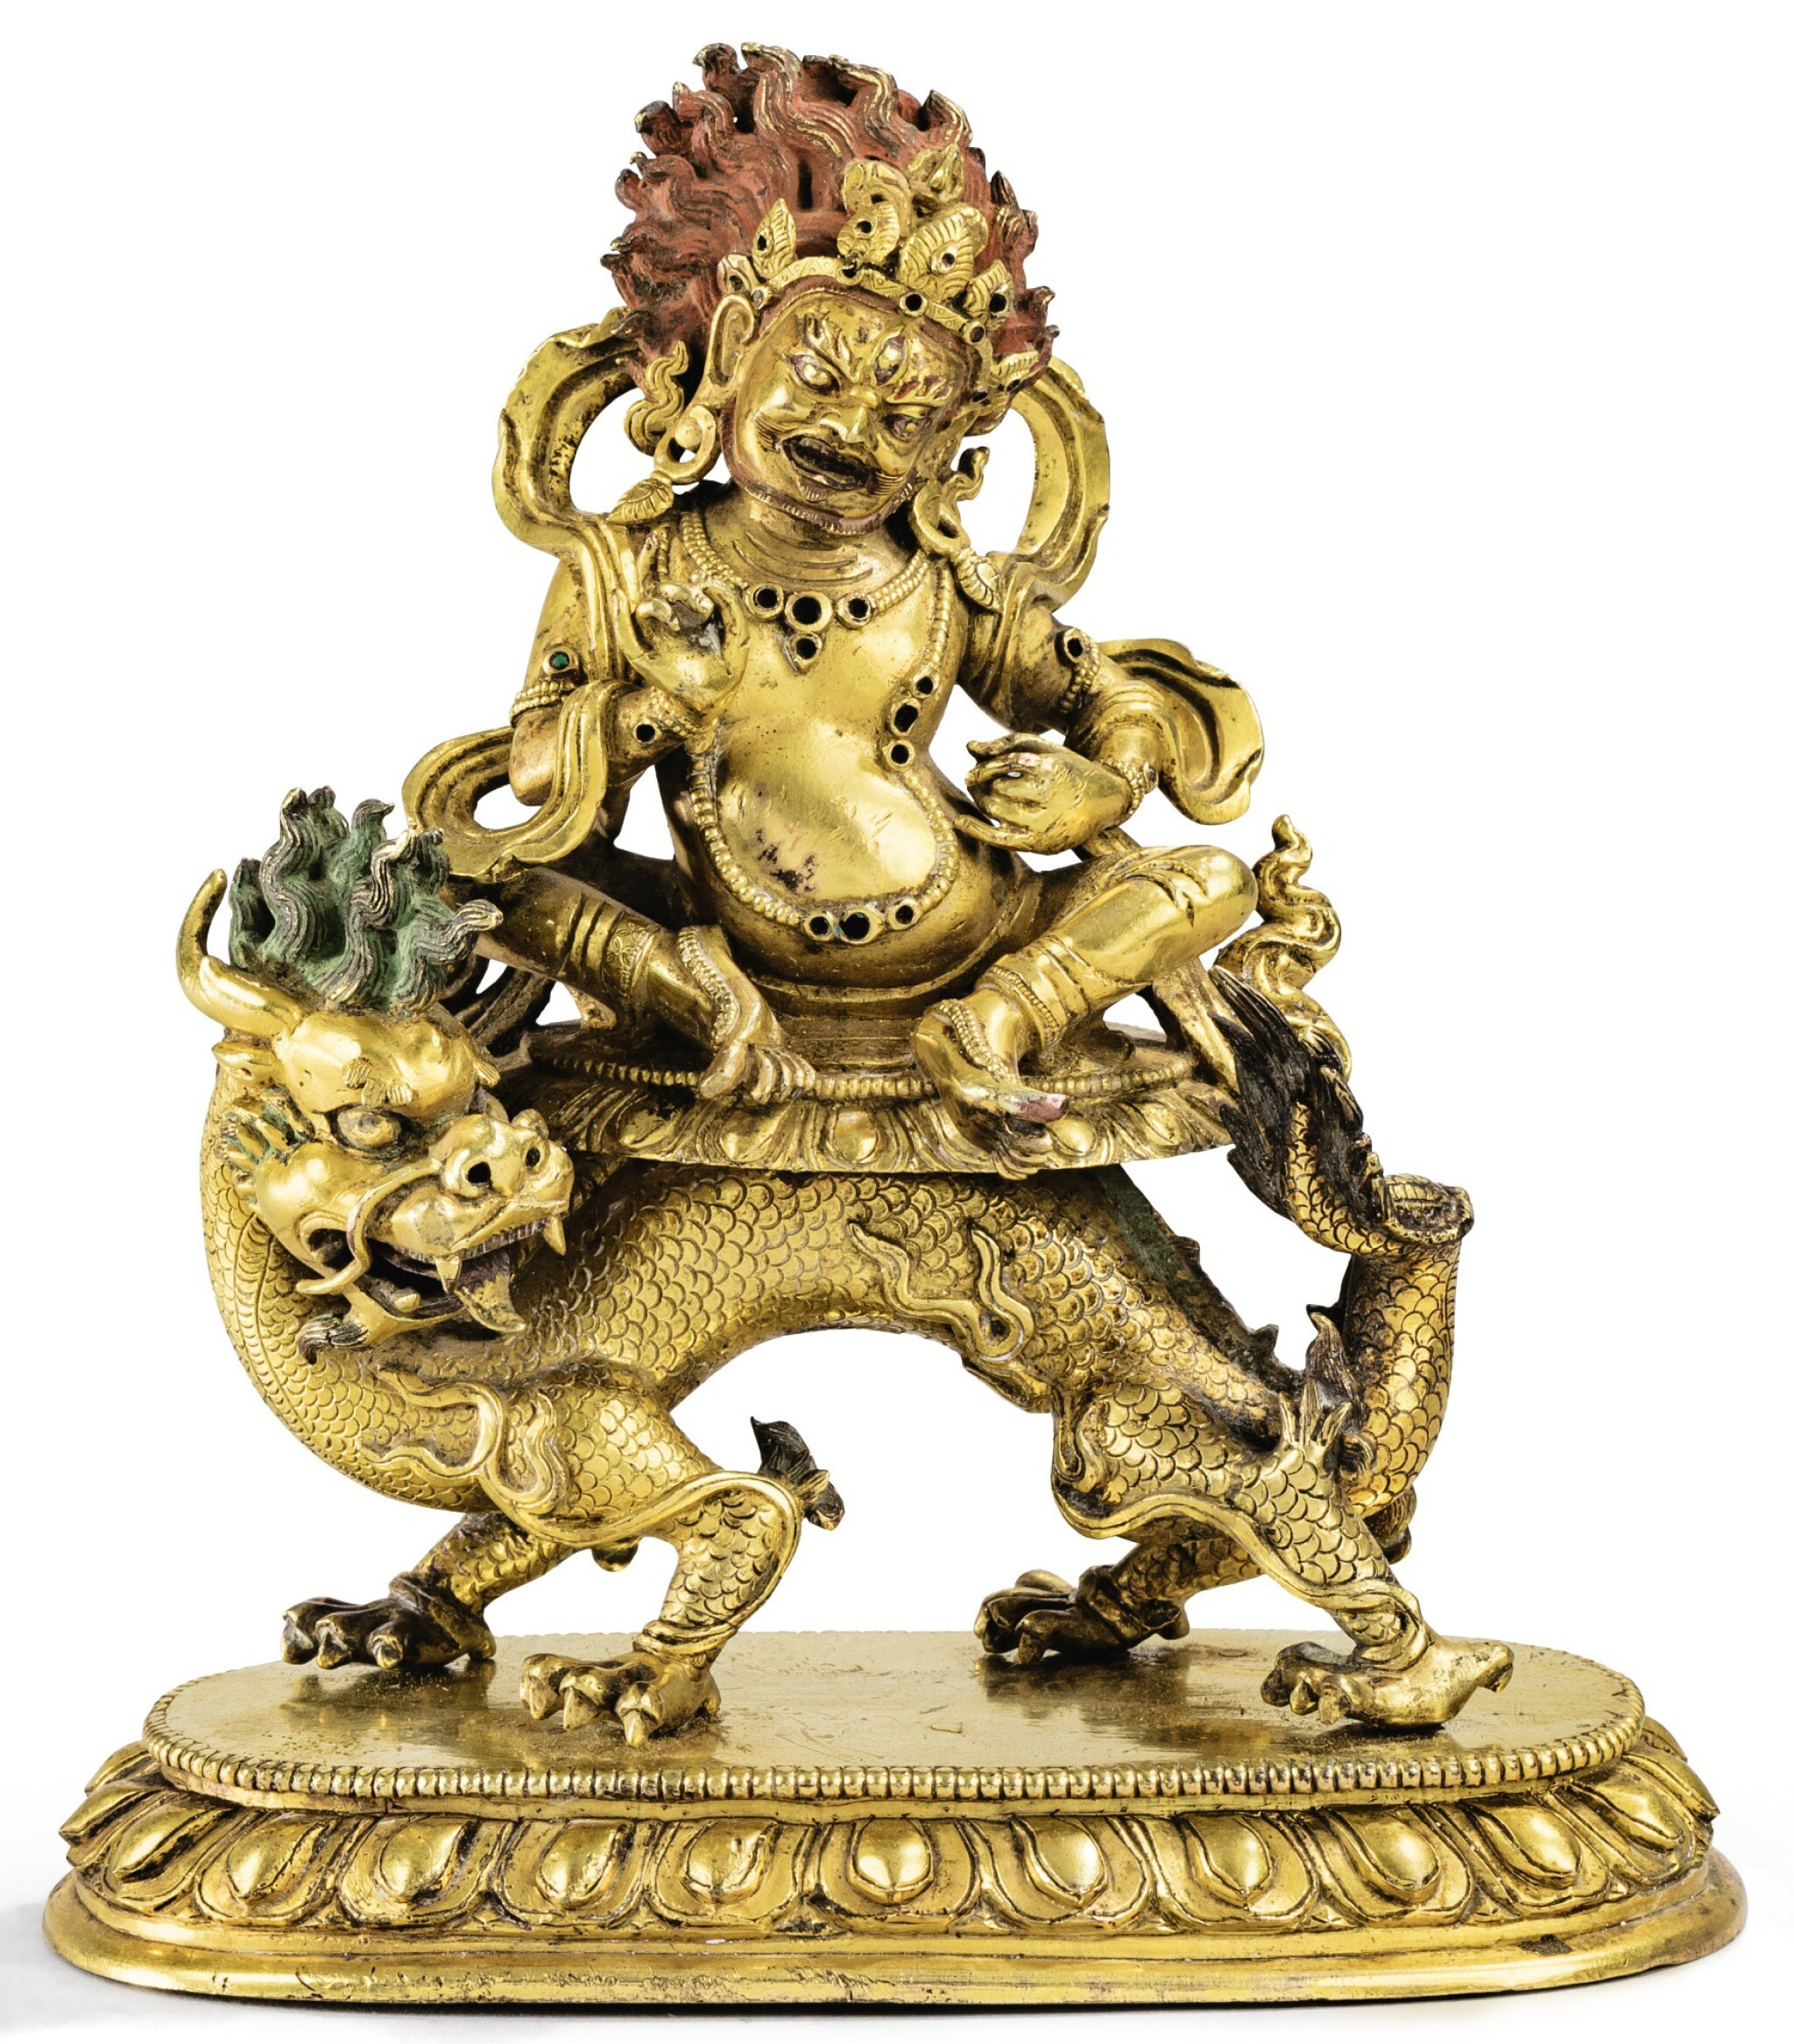 STATUETTE DE JAMBHALA BLANC EN BRONZE DORÉ DYNASTIE QING, XVIIIE SIÈCLE|  清十八世紀 鎏金銅騎龍白財神坐像| A well-cast gilt-bronze figure of White Jambhala, Qing Dynasty, 18th century